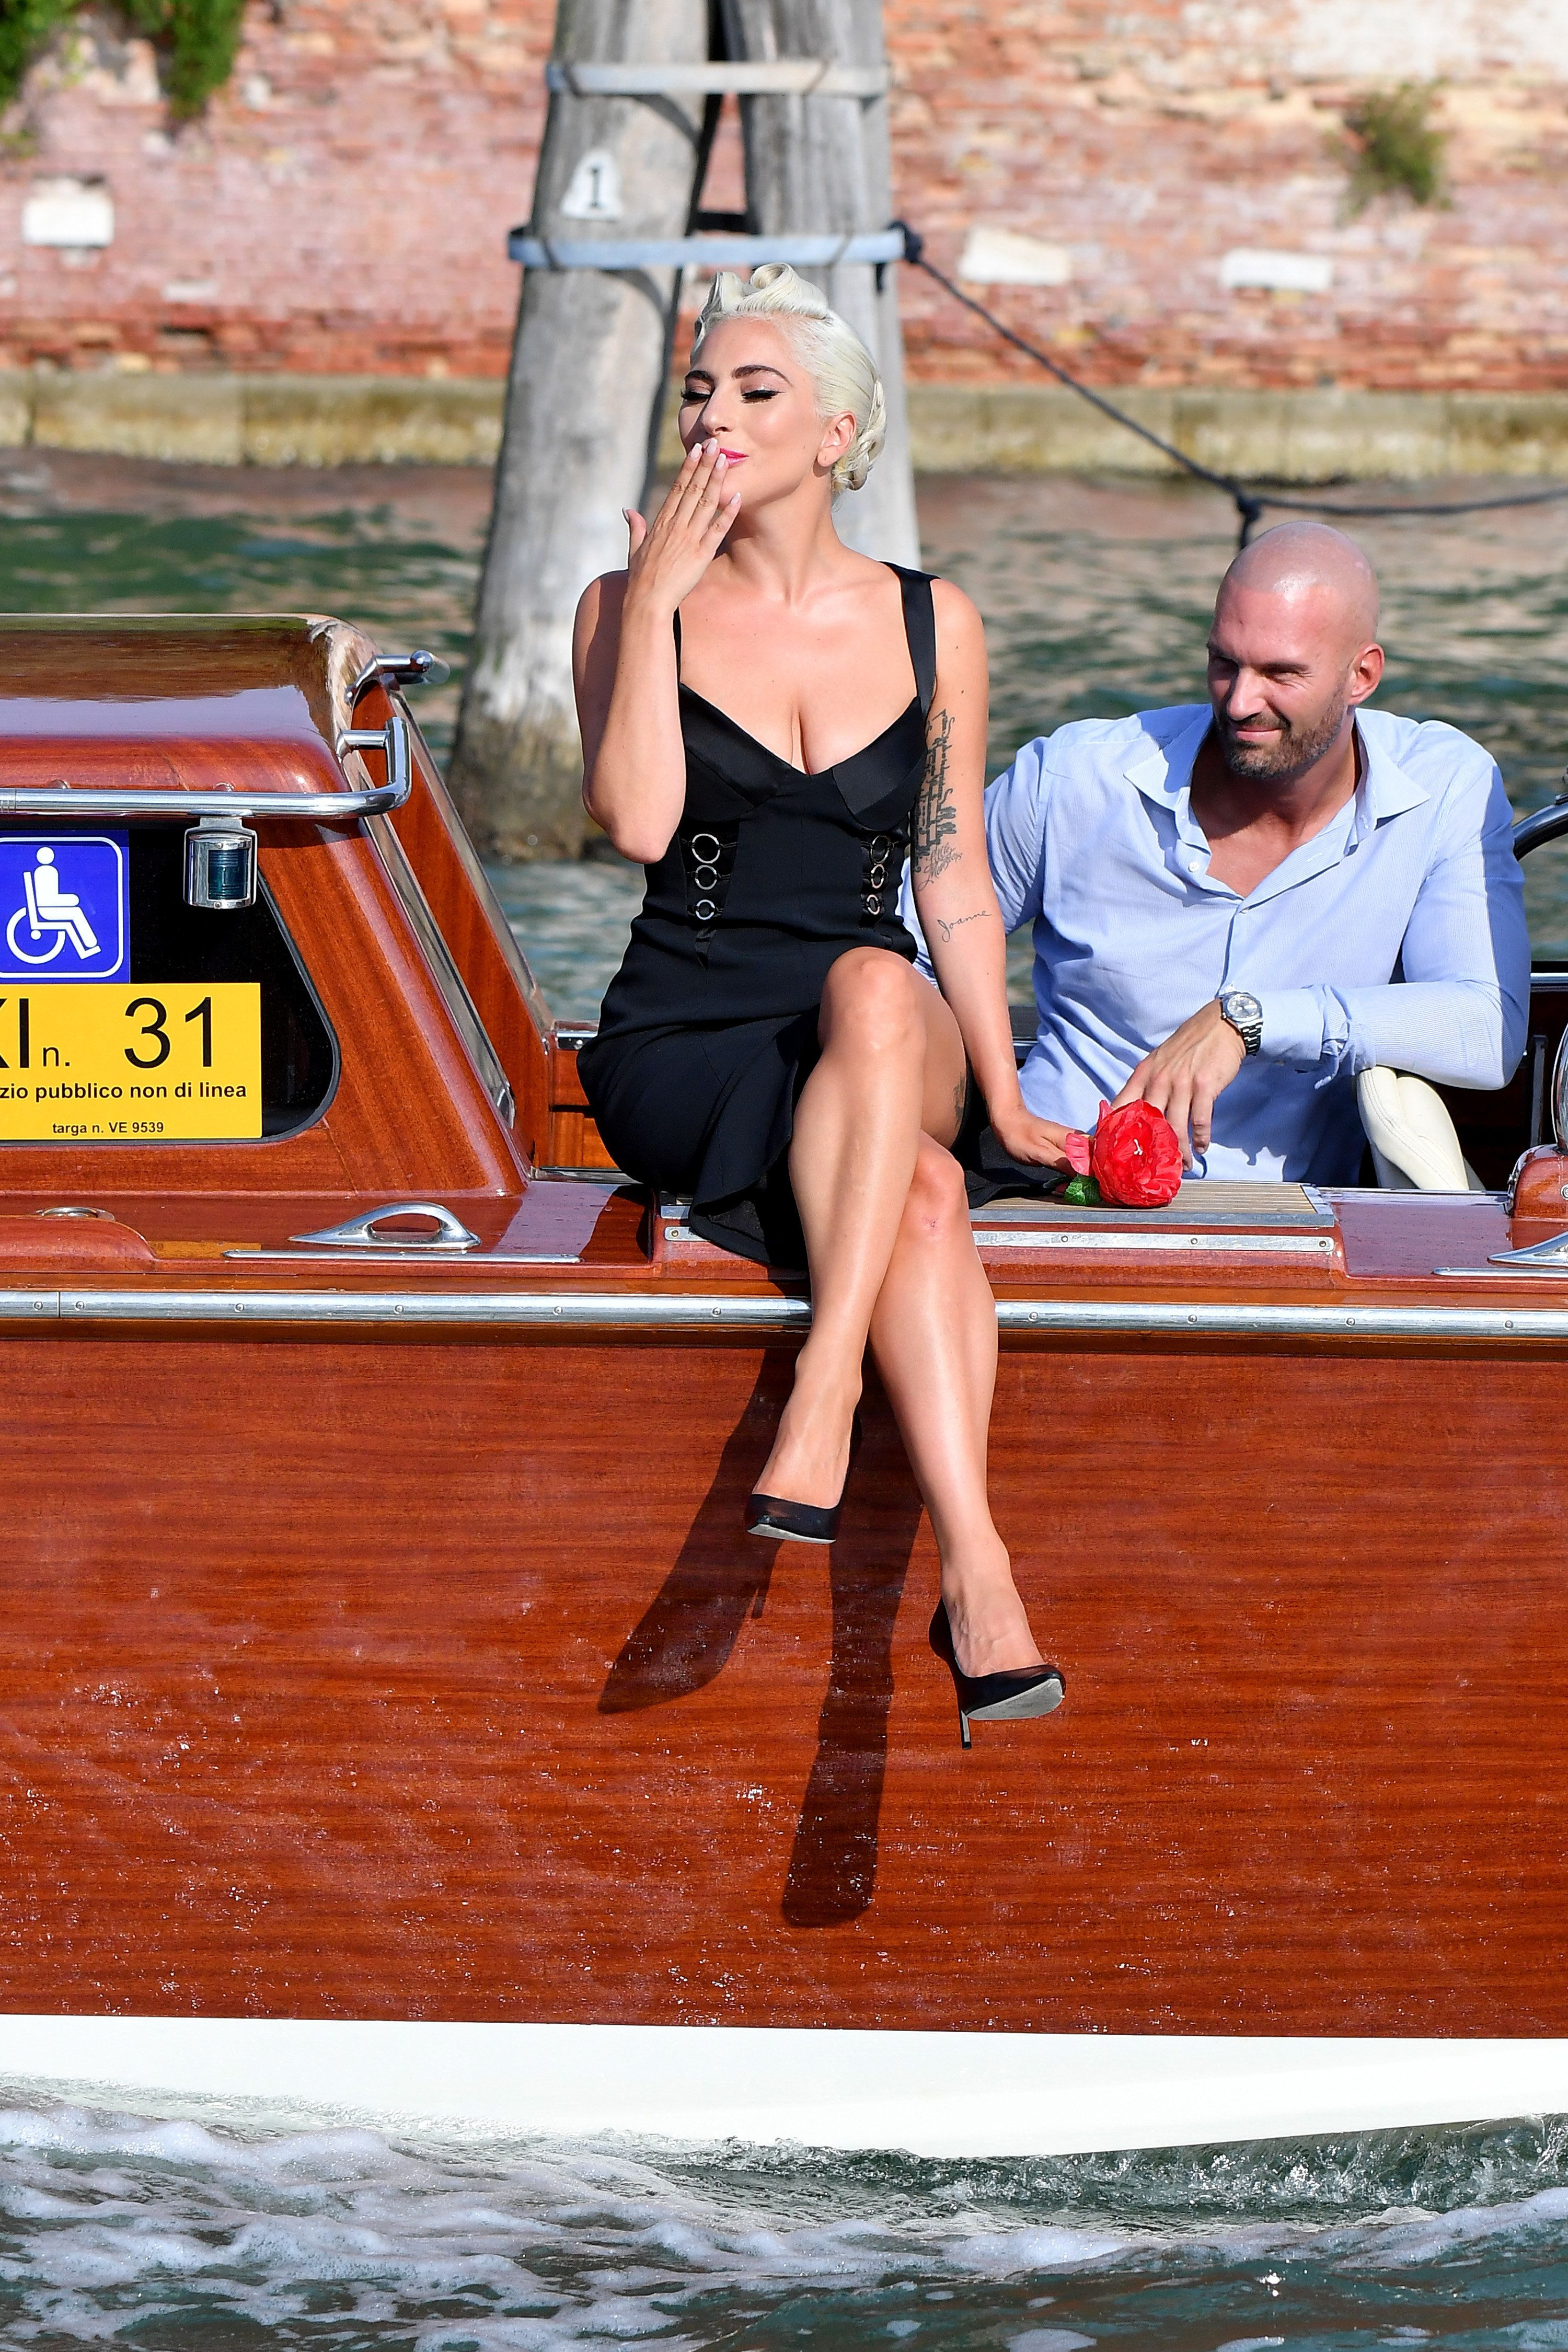 Lady Gaga Makes A Dramatic Entrance In Venice, Serving Full Glam Ahead Of 'A Star Is Born' Premiere